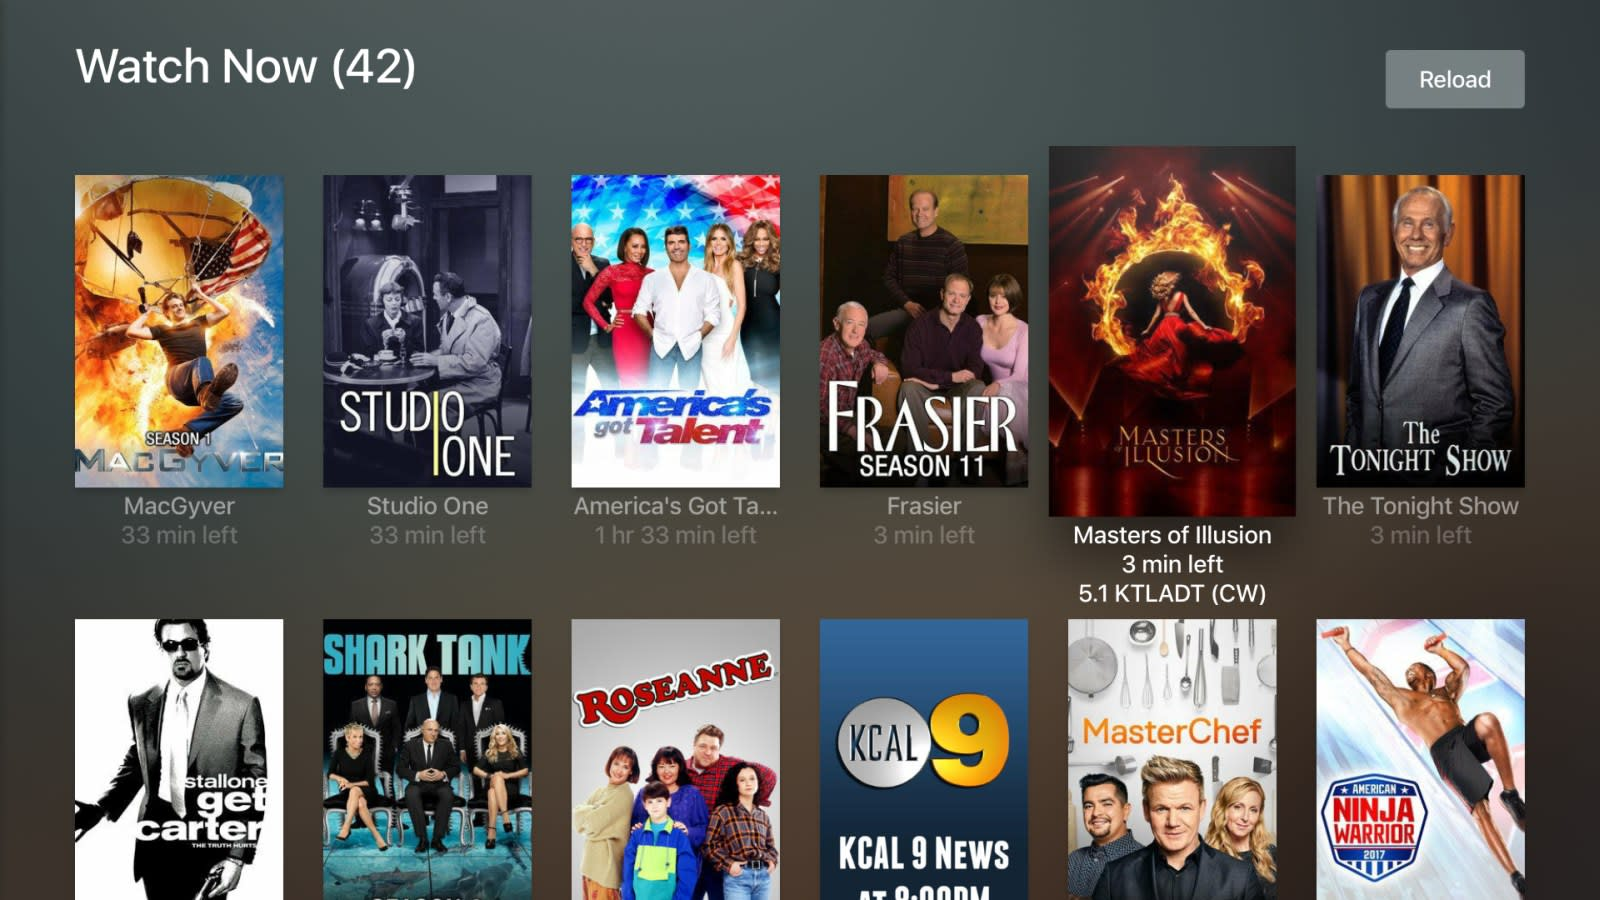 Plex pushes Live TV broadcasts to Apple TV, Android